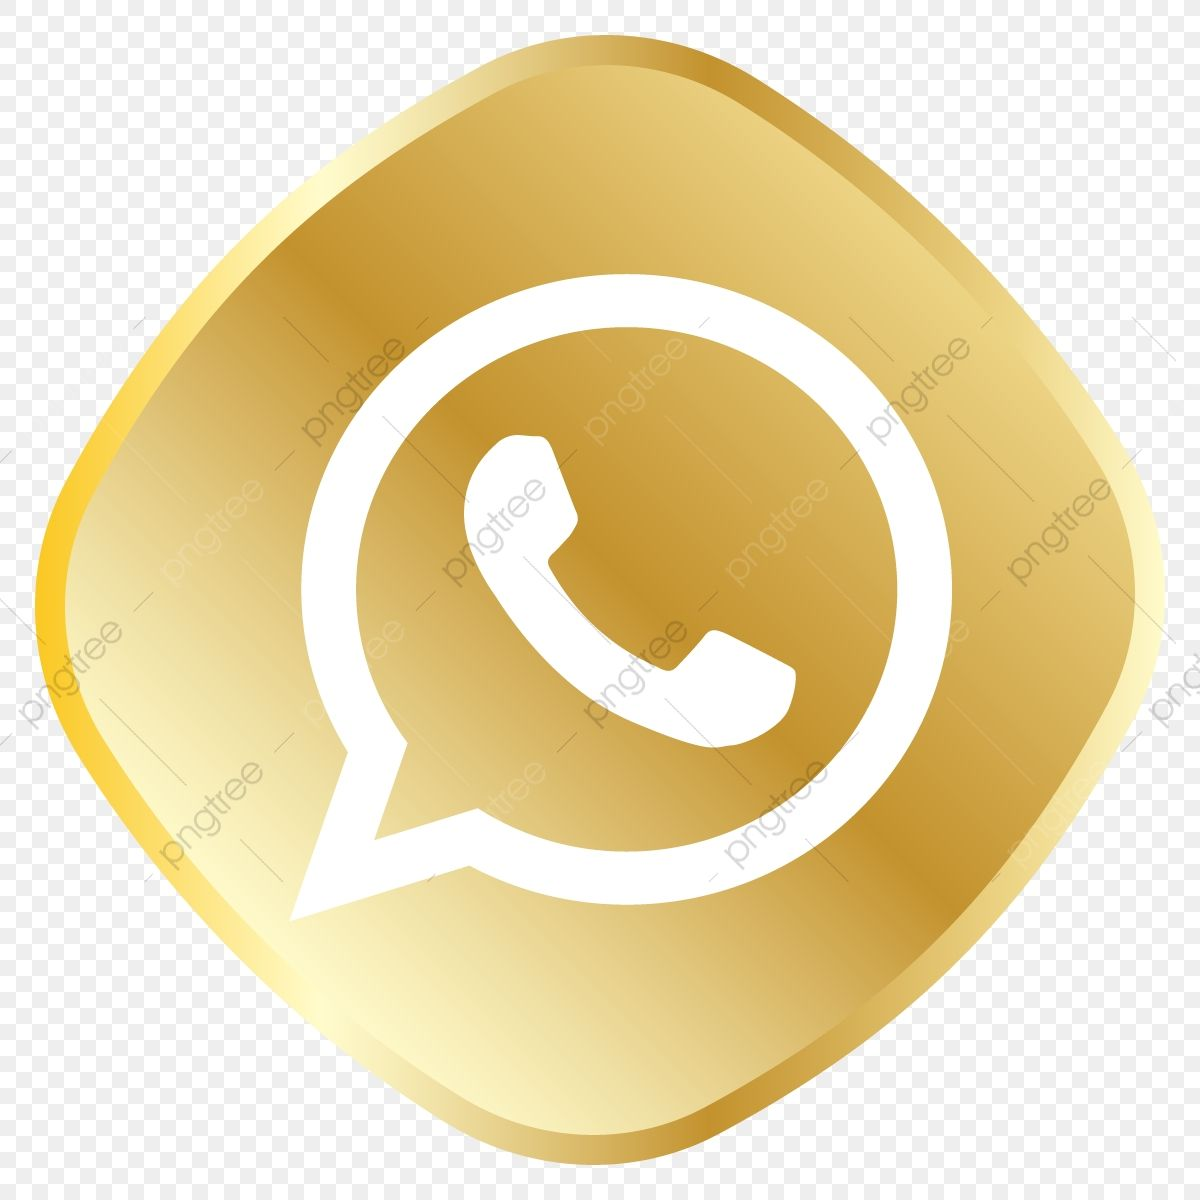 Golden Whatsapp Icon Whatsapp Logo Whatsapp Clipart Royal Golden Png And Vector With Transparent Background For Free Download Logo Design Video Gold Logo Branding Whatsapp Gold